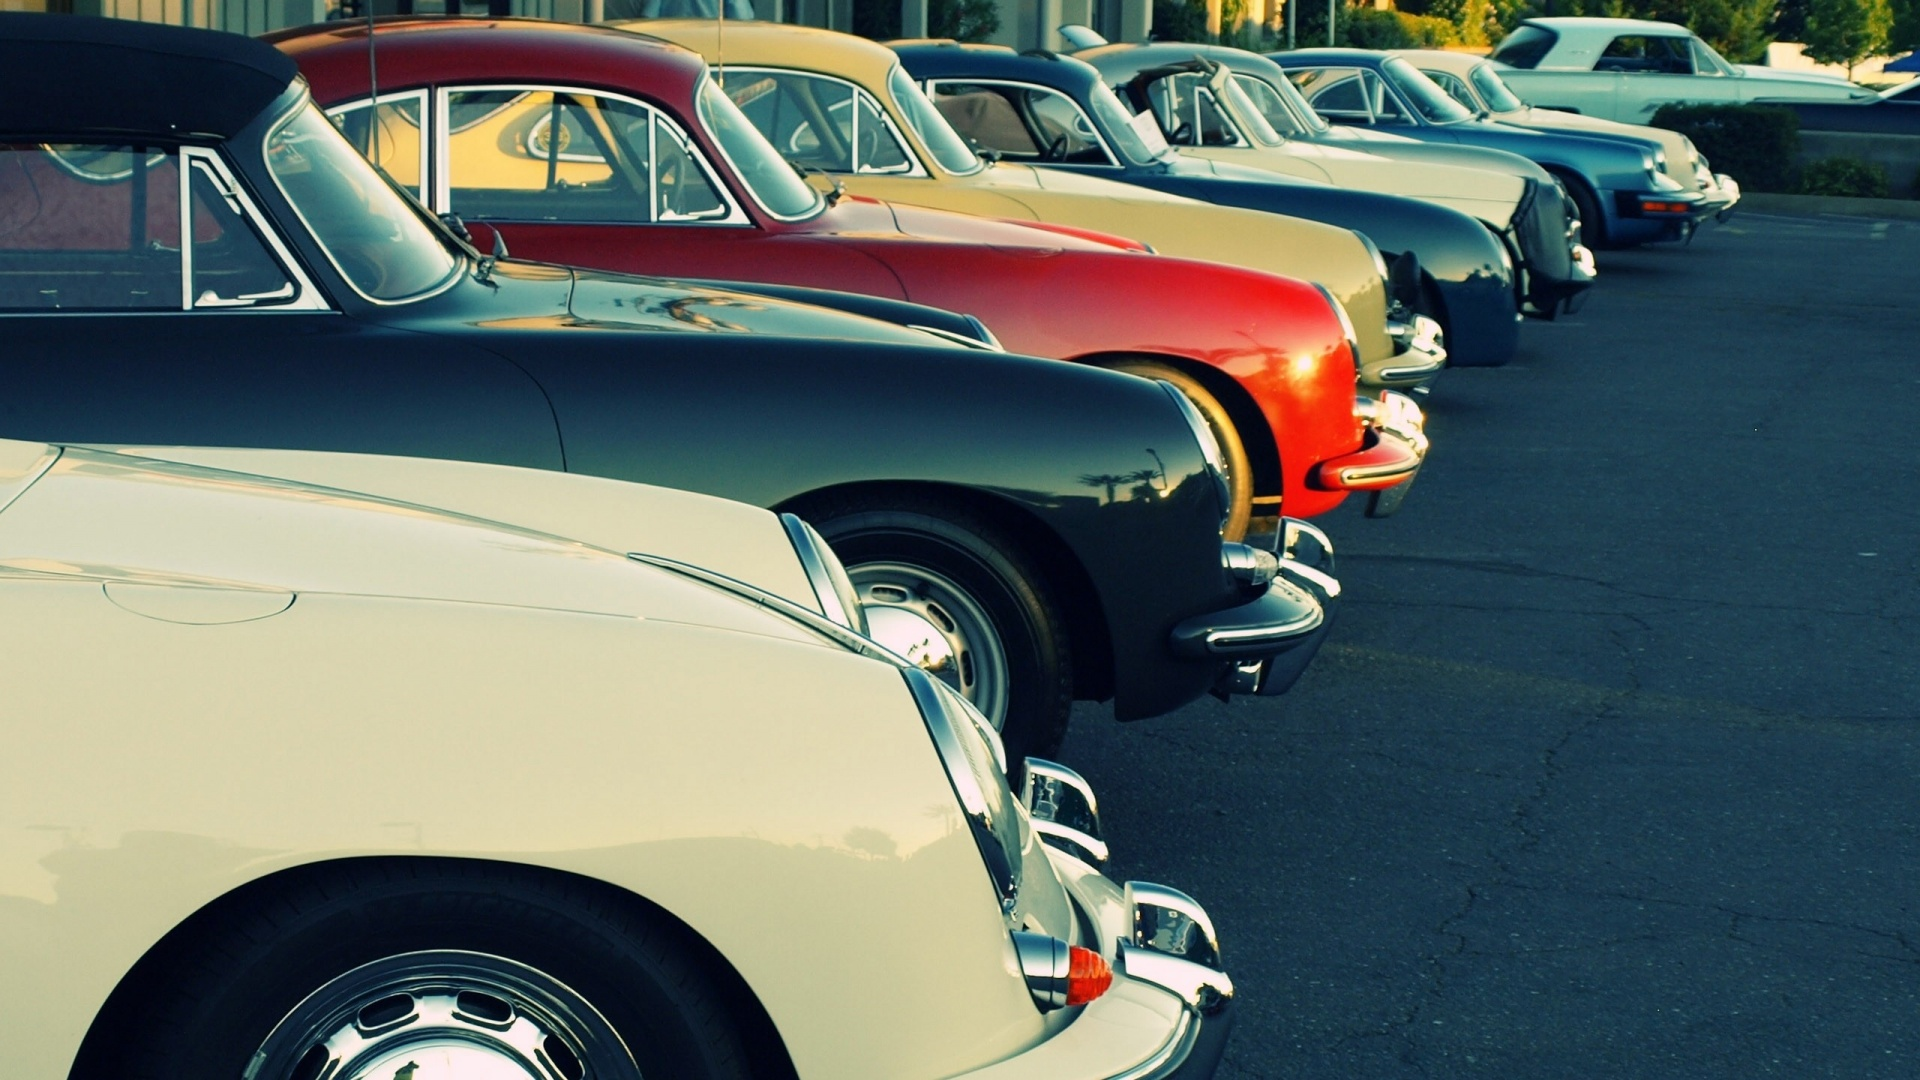 Classic Cars - High Definition Wallpapers - HD wallpapers